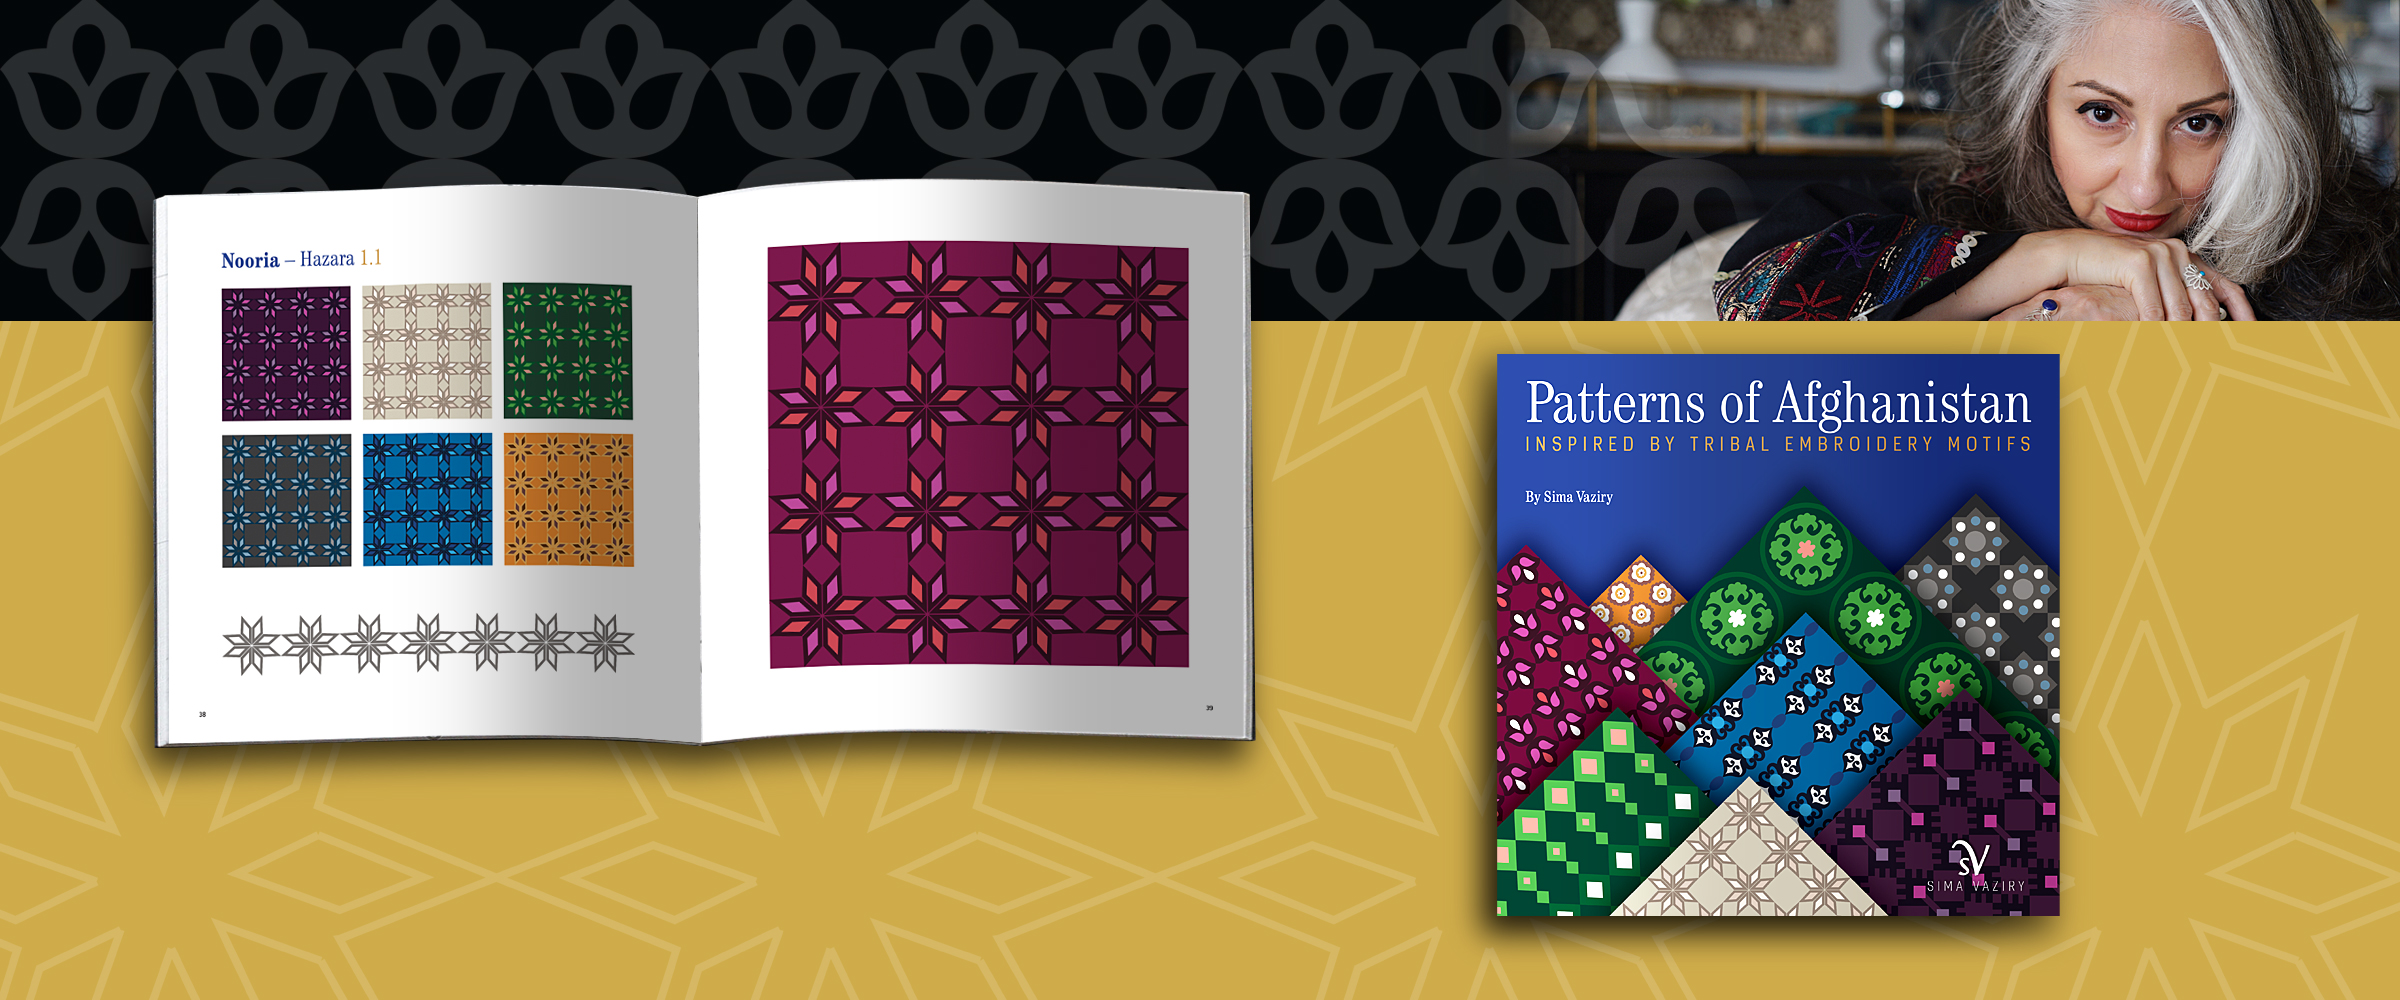 sima vaziry patterns of afghanistan book